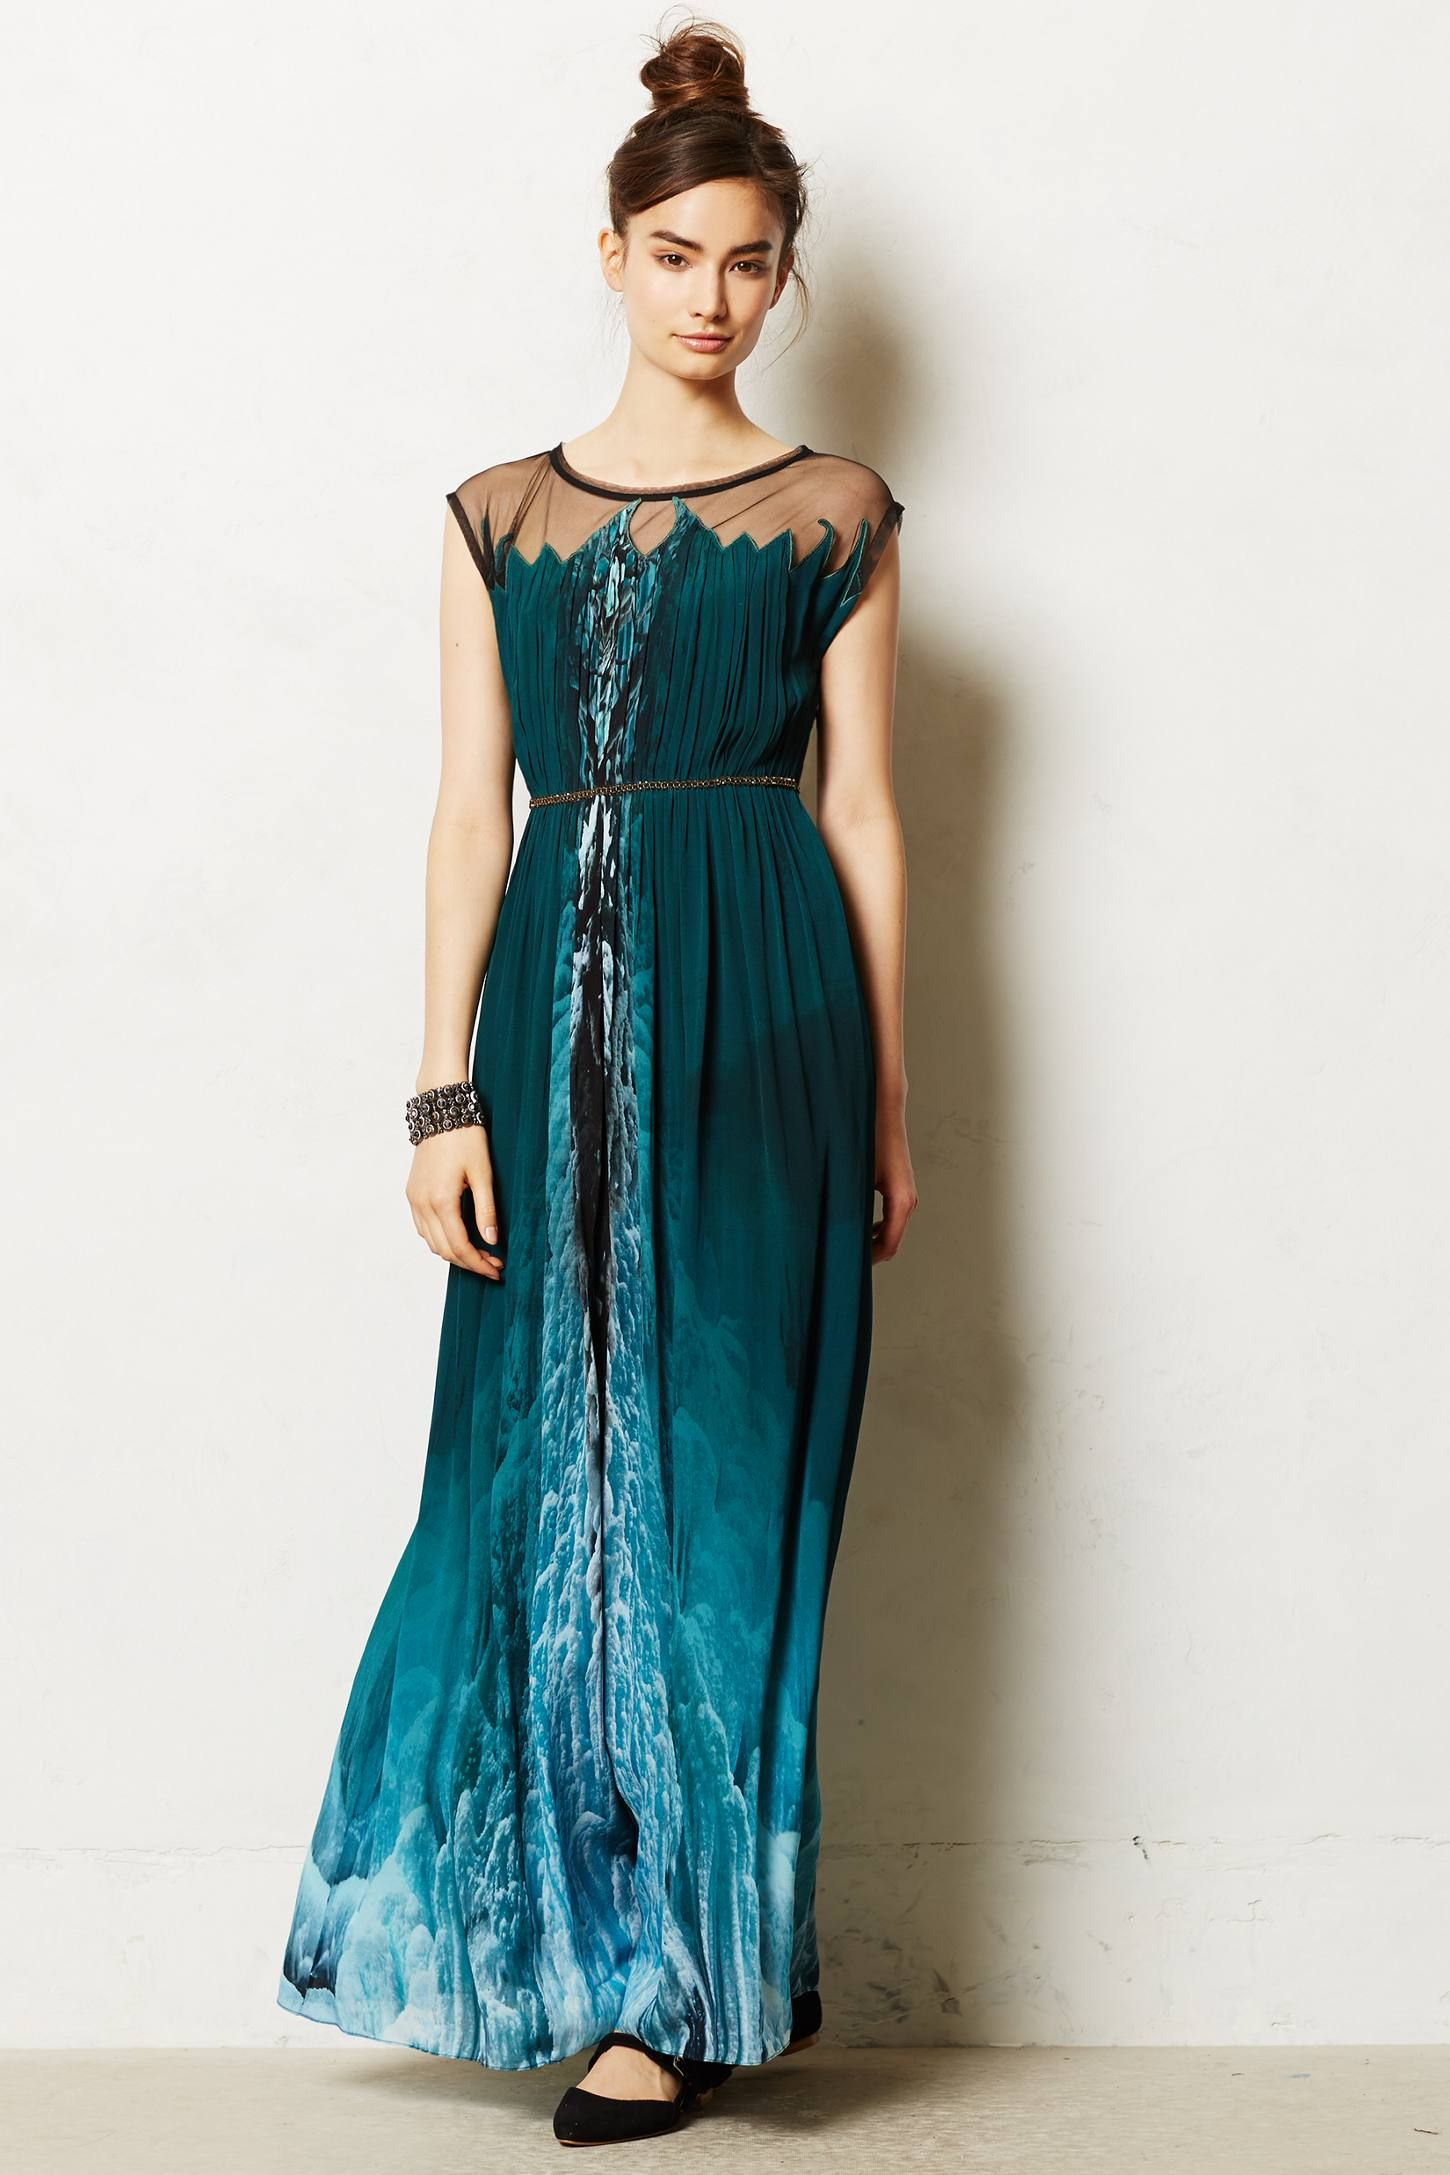 Icefall Maxi Dress - anthropologie | WHAT TO WEAR — fashion ...